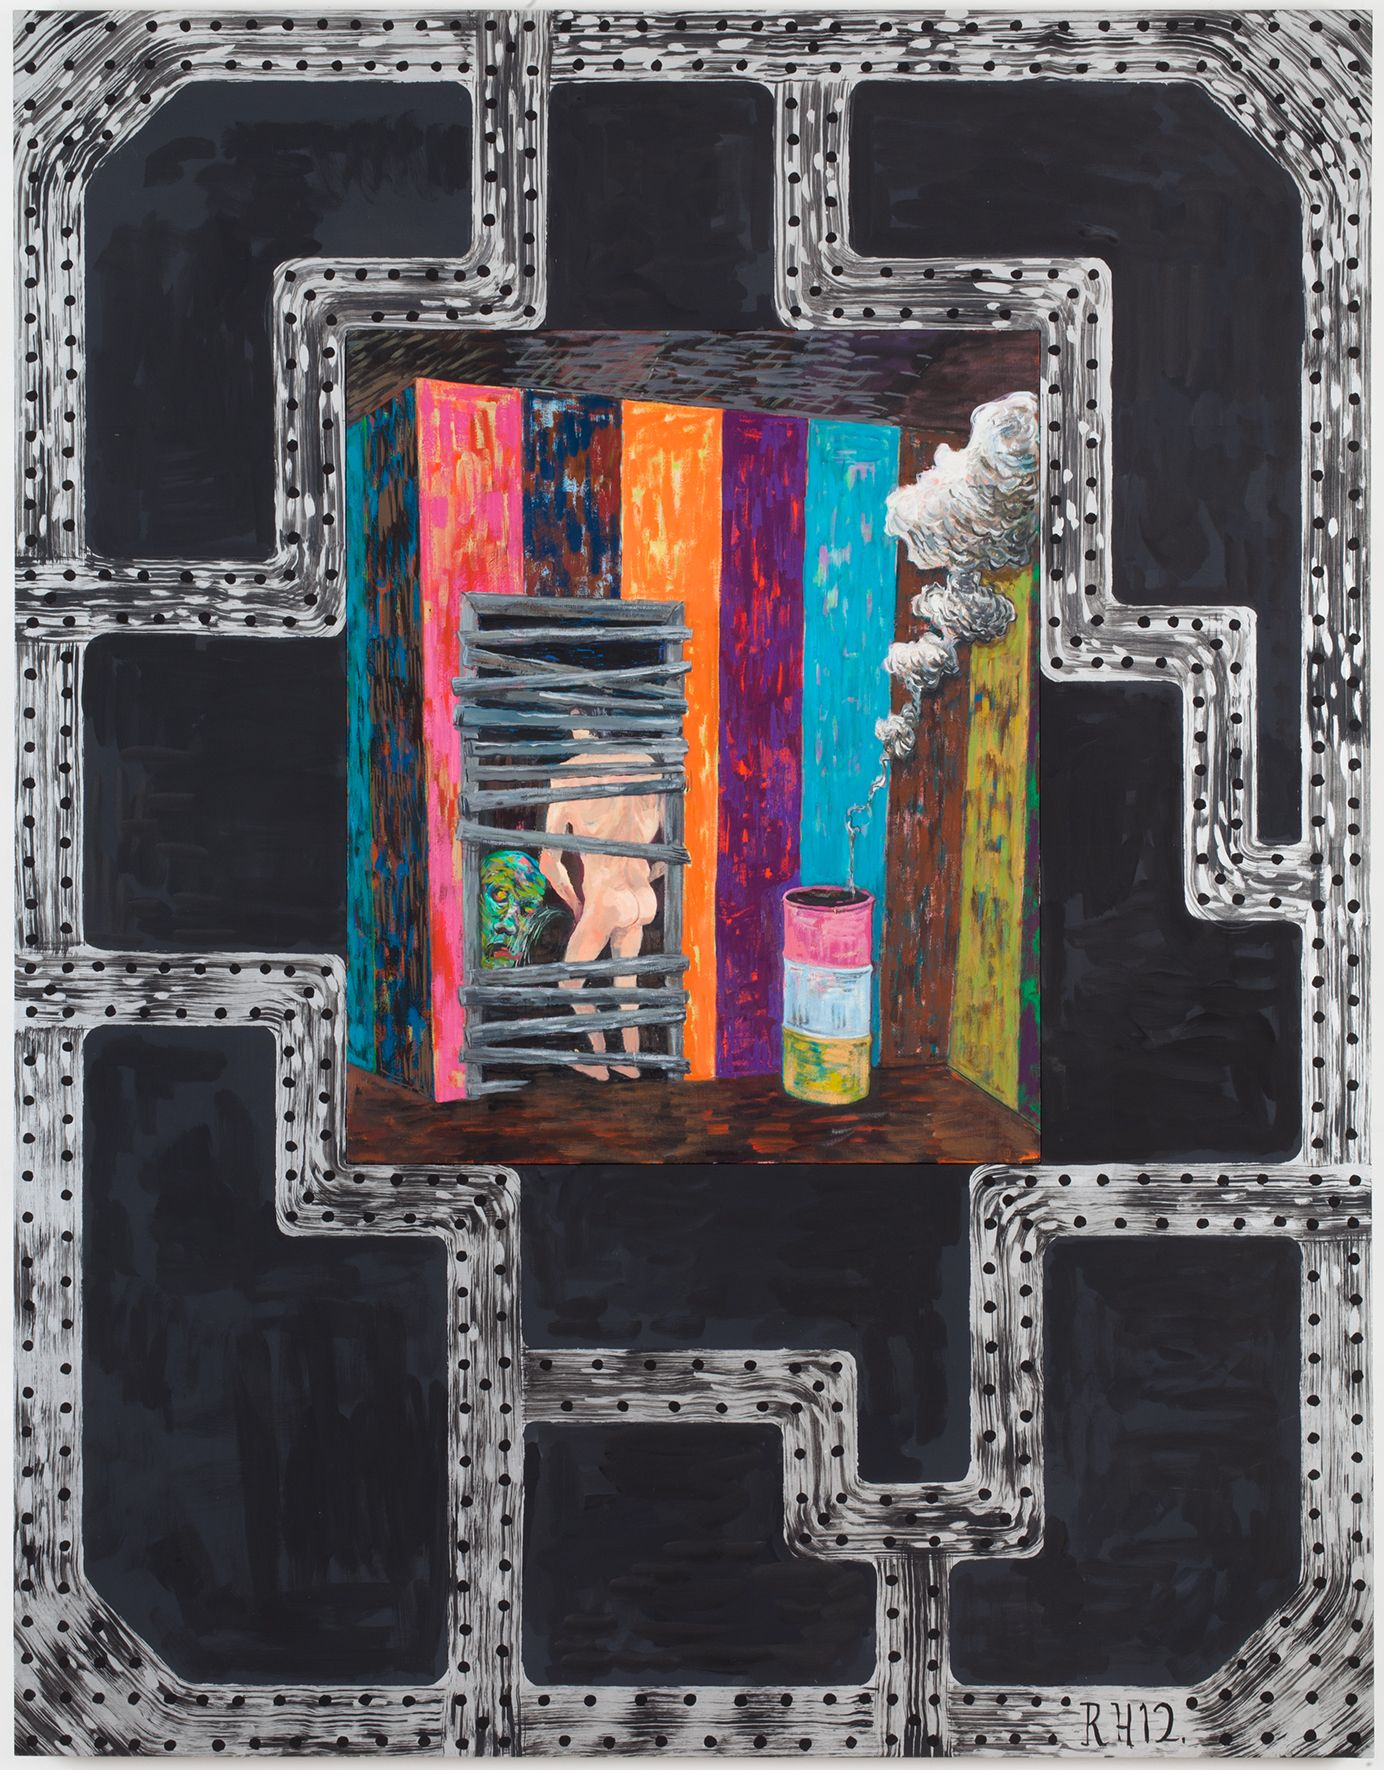 Brig #5: Cumpire, 2012, Oil on canvas and acrylic on panel, 63 x 49 x 1 5/8 inches (160 x 124.5 x 4.1 cm)